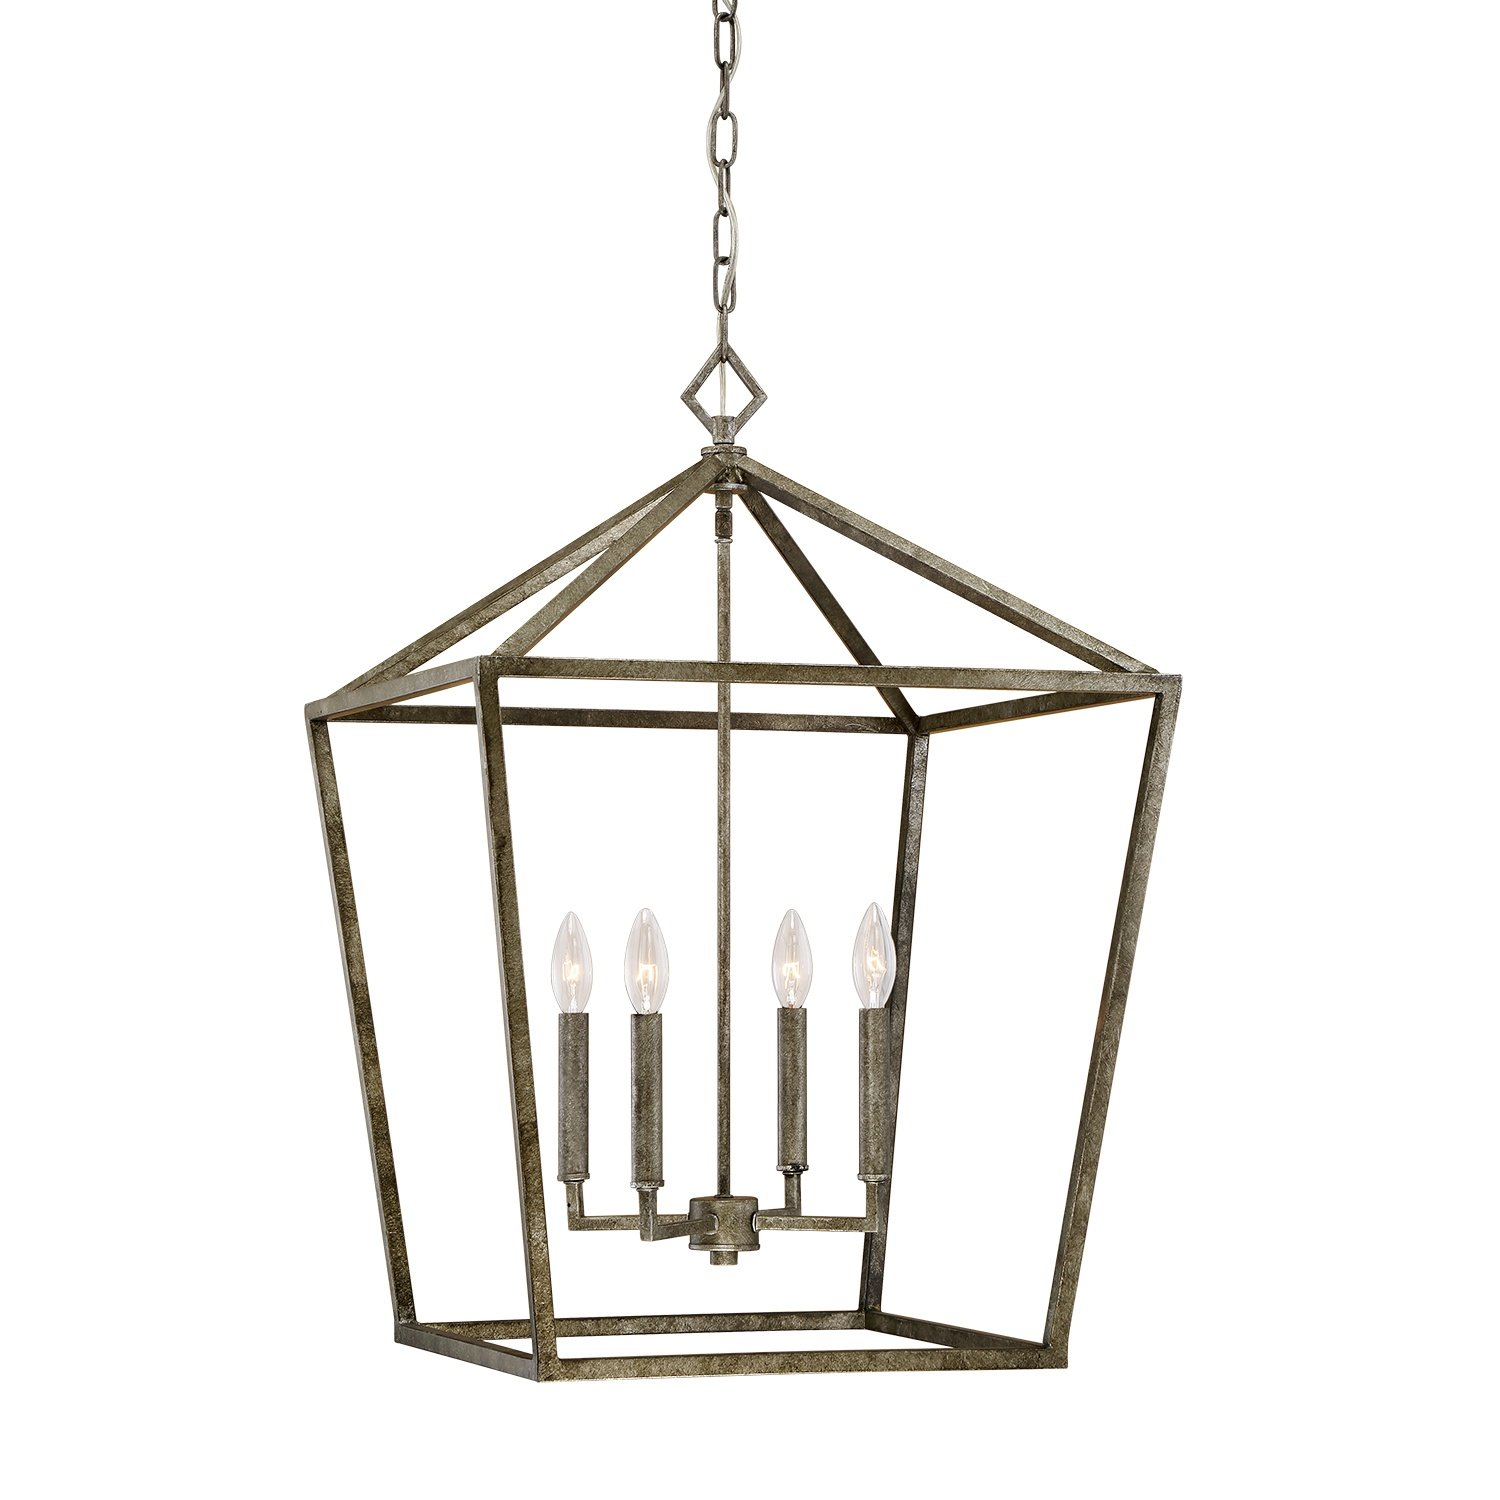 Millennium lighting 3254 as 4 light pendant amazon arubaitofo Gallery